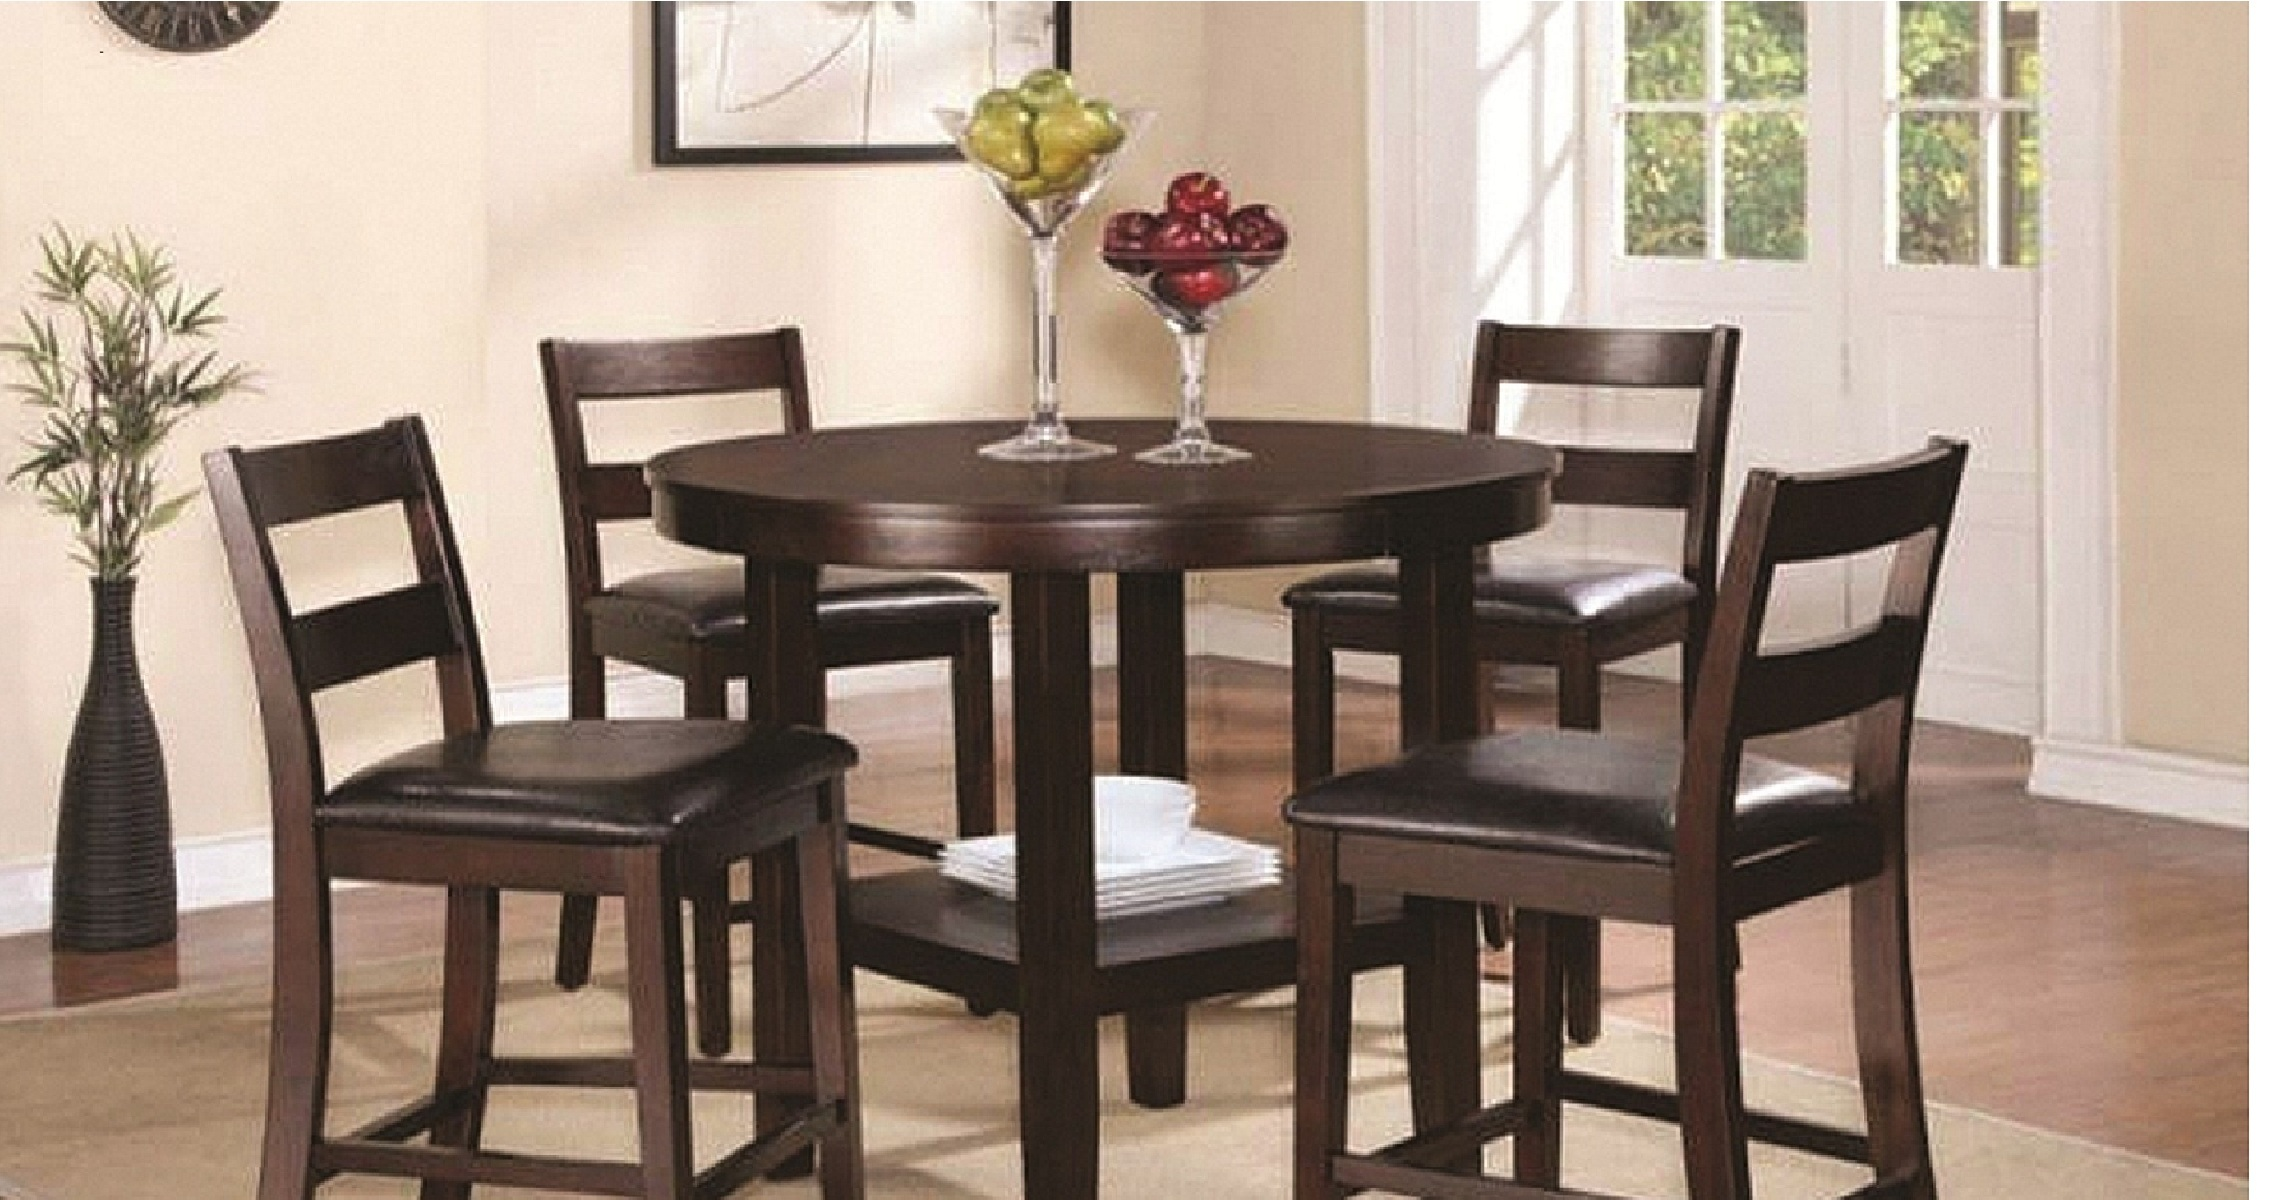 19001-trd4 - 5 piece counter high dining set (dining table and 4